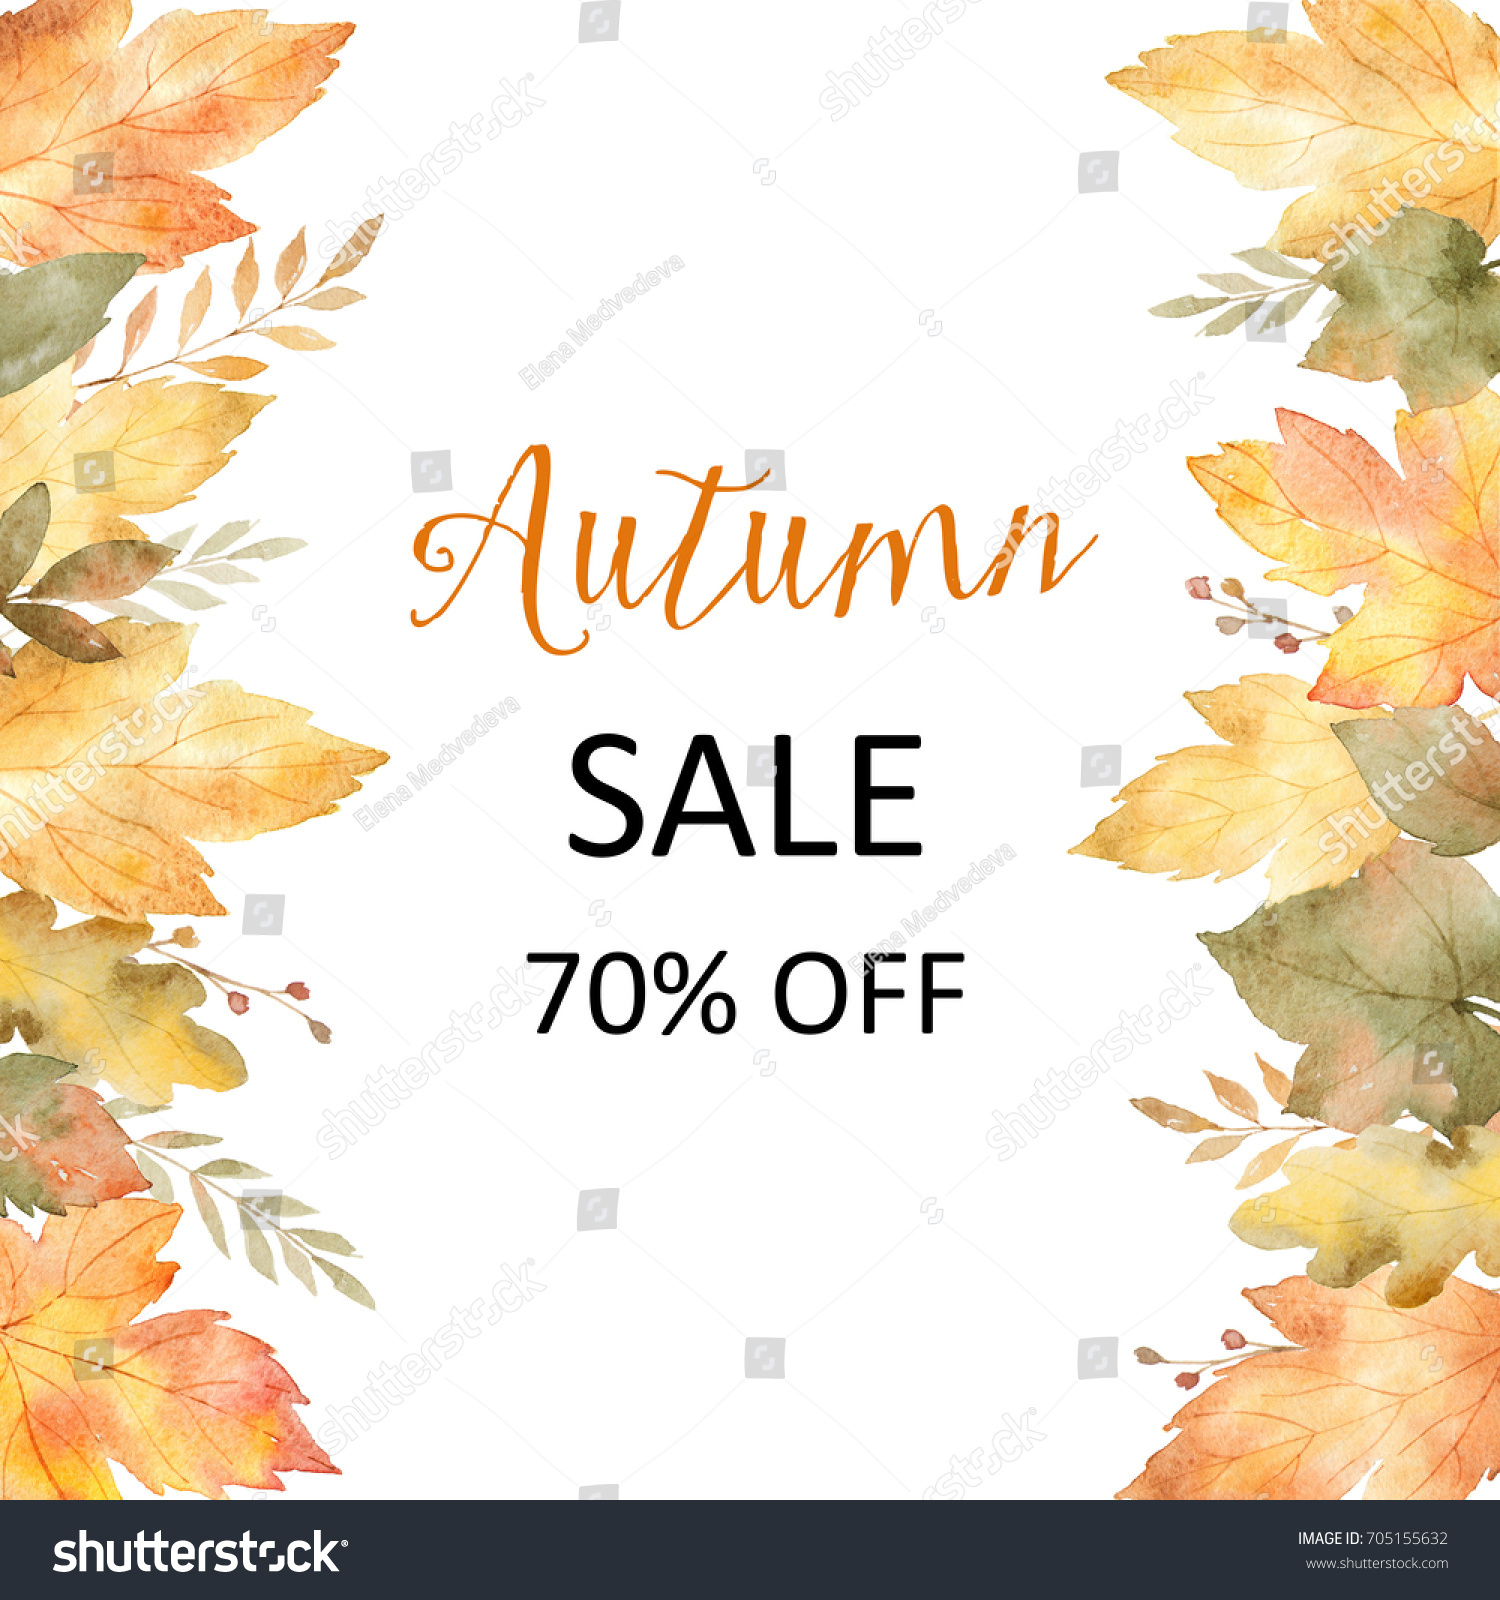 Watercolor autumn banner sales 70 isolated stock illustration watercolor autumn banner sales 70 isolated on white background illustration for of discount kristyandbryce Images